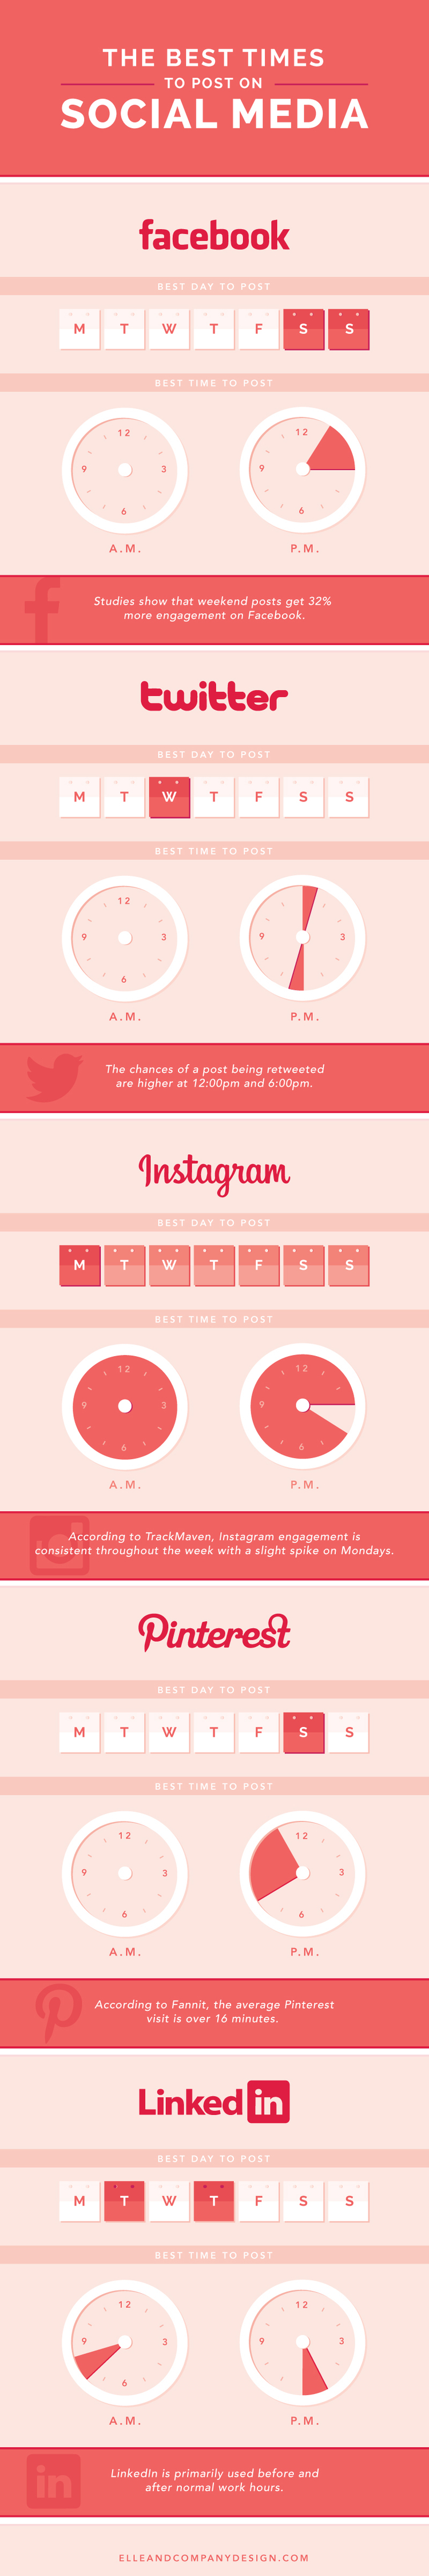 Best time to Post on Social Media in 2015